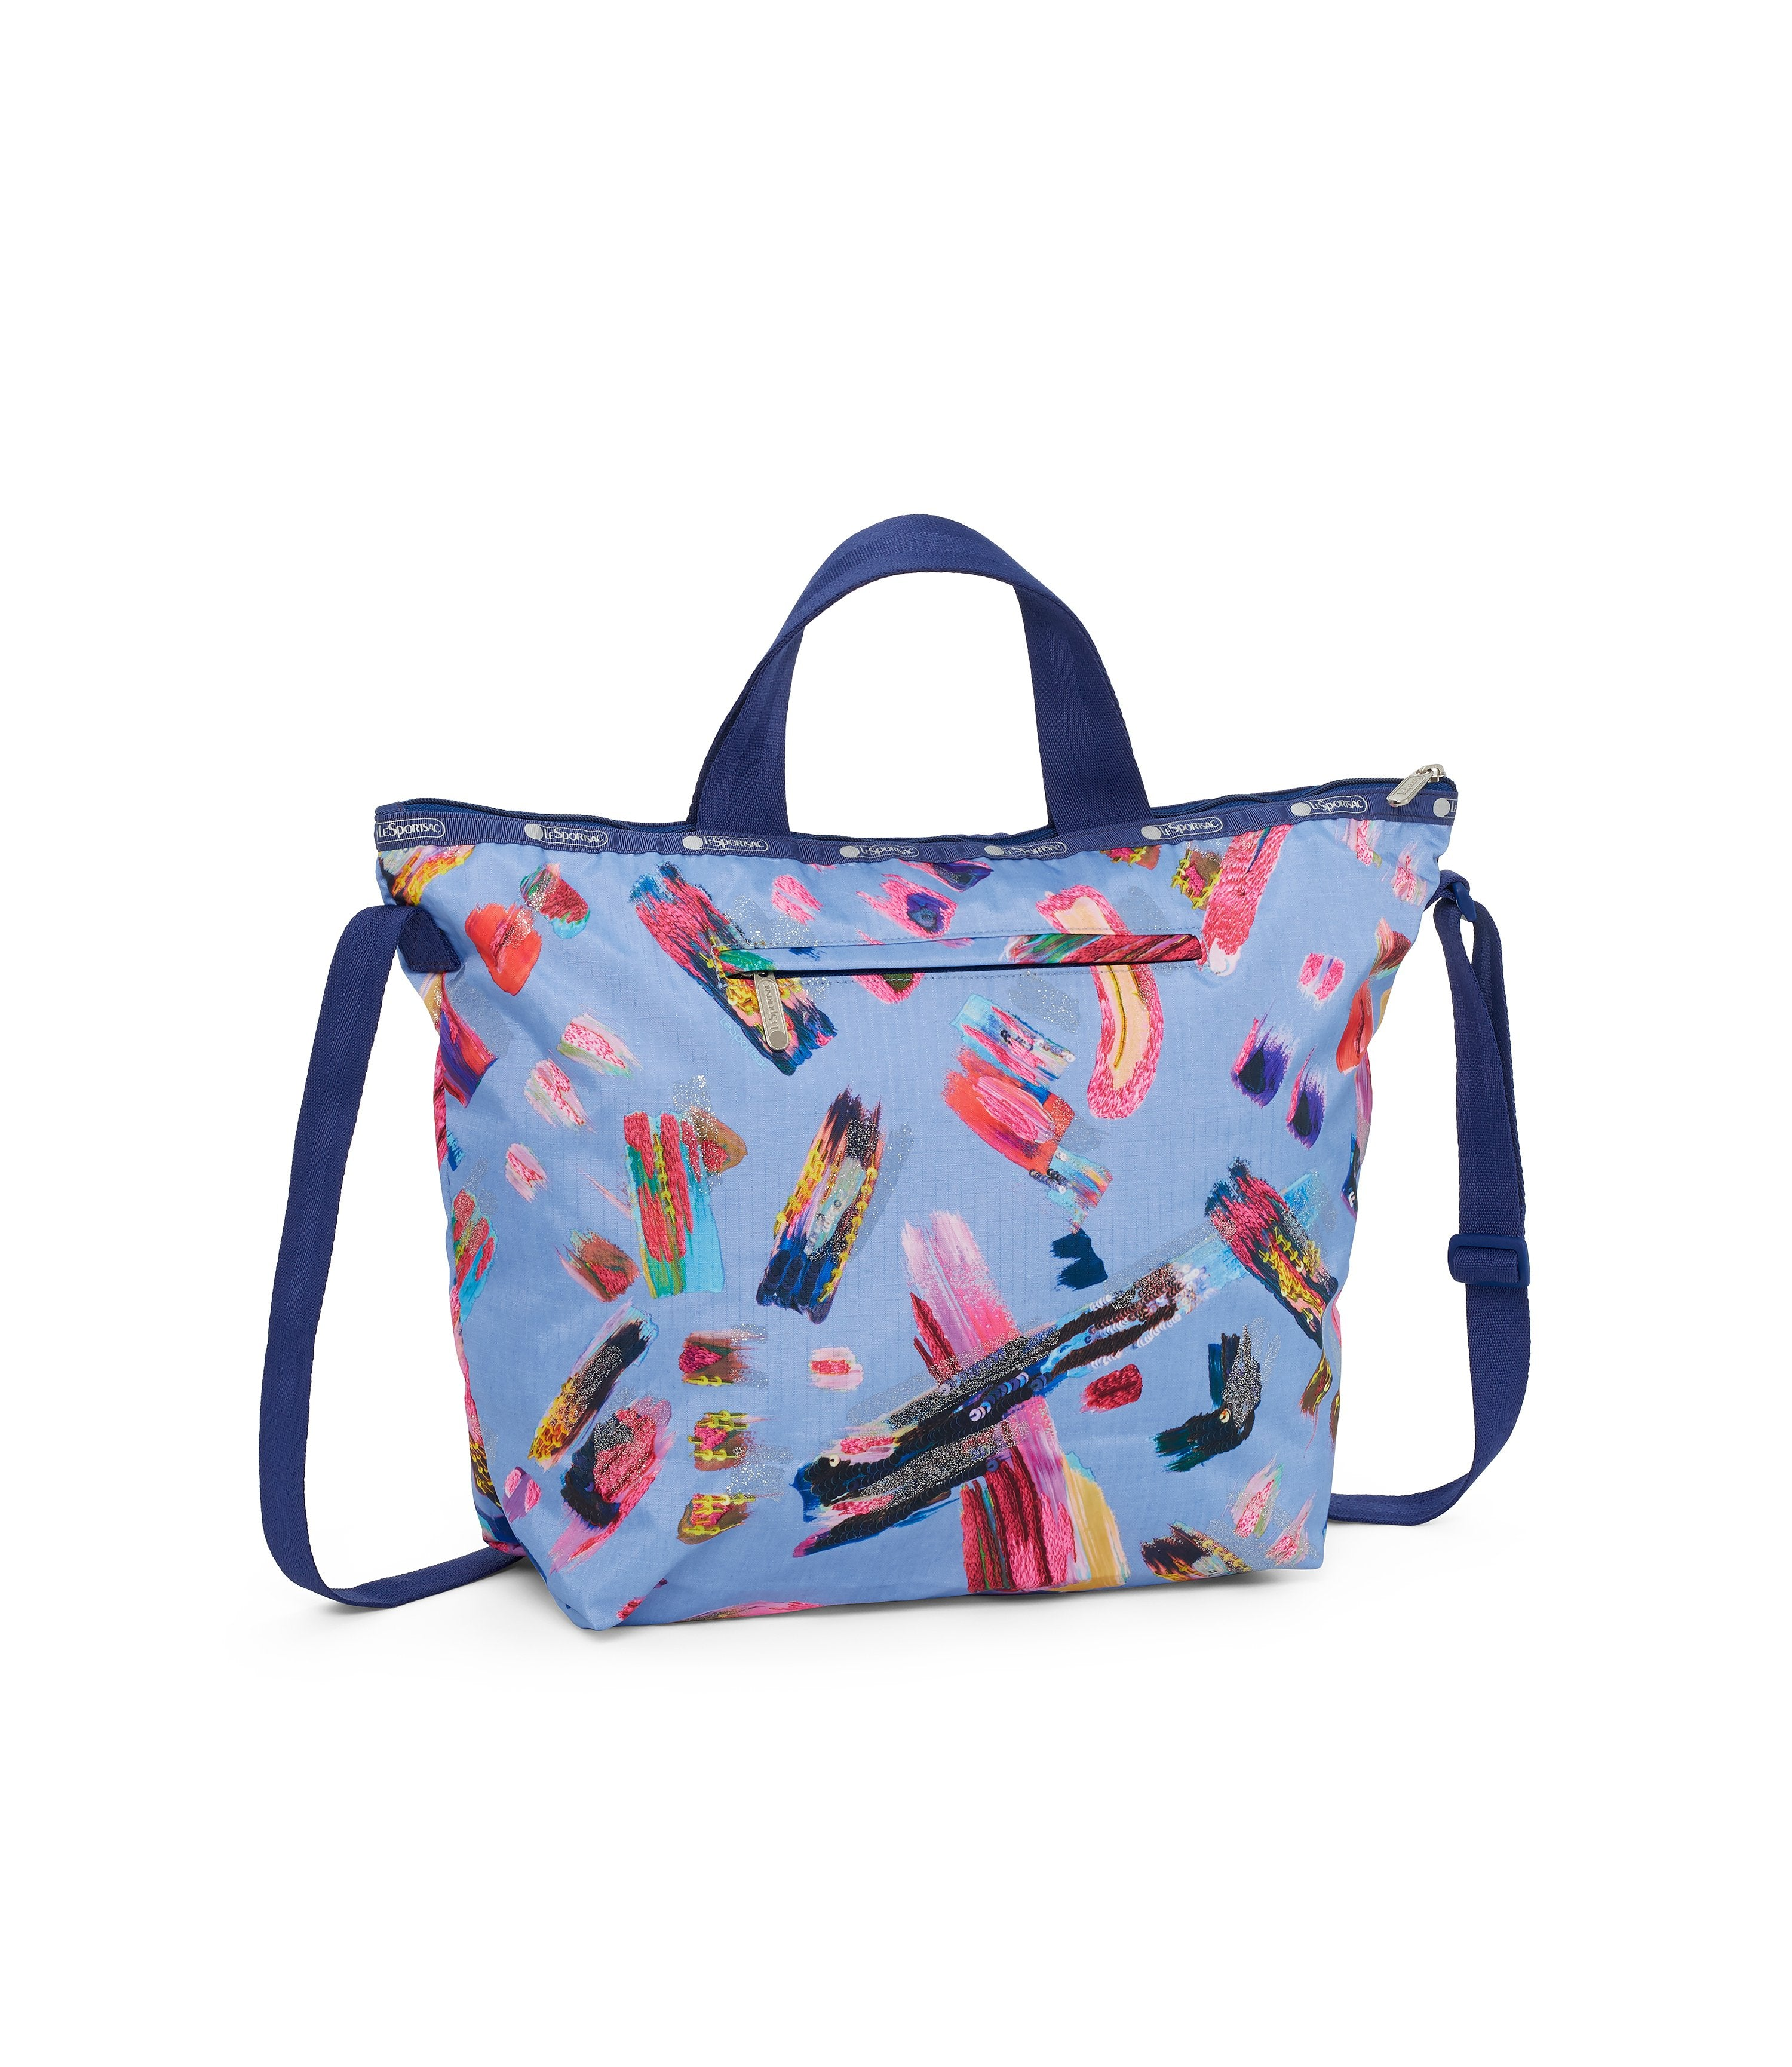 Deluxe Easy Carry Tote 3